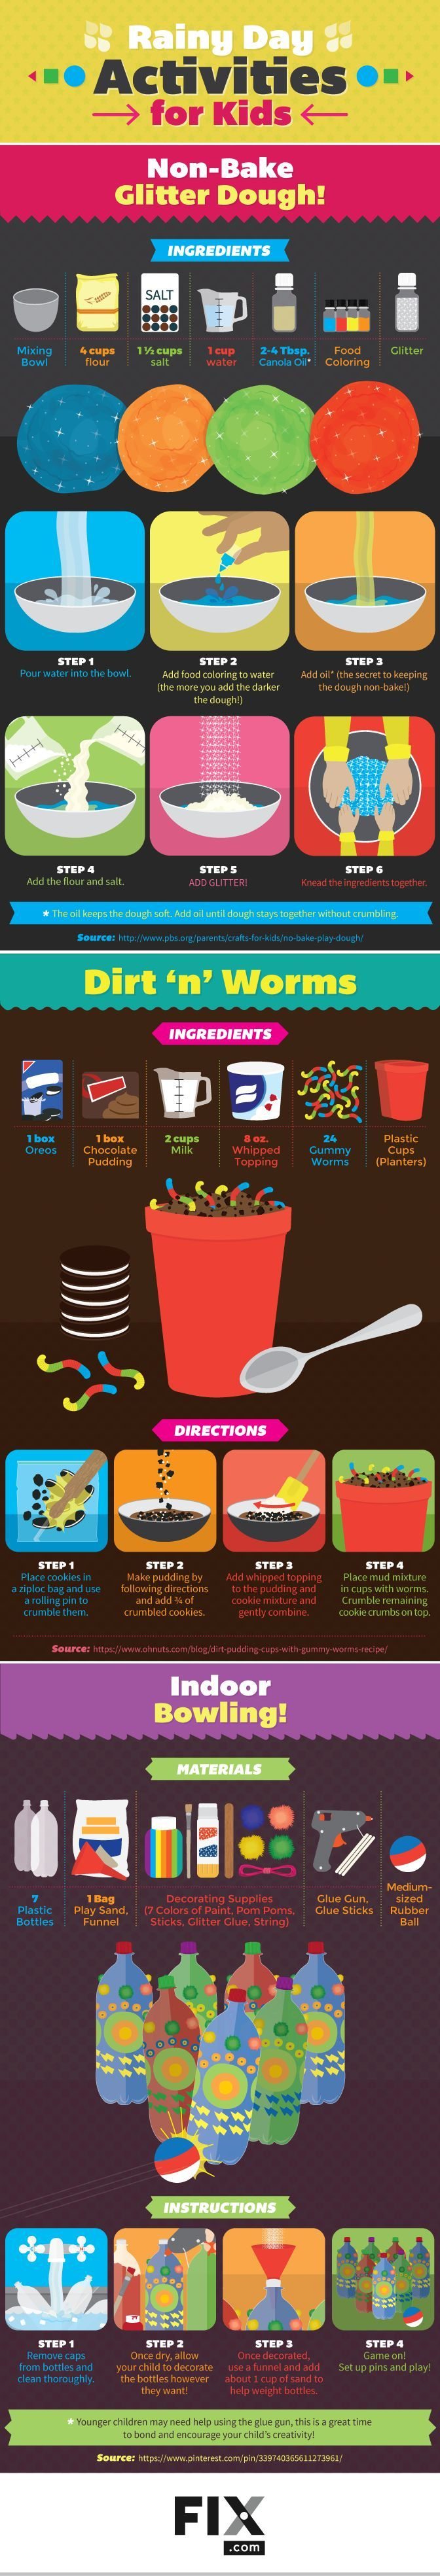 Check out Fun Kids Activities On A Rainy day | [Infographic] at http://diyready.com/rainy-day-activities/